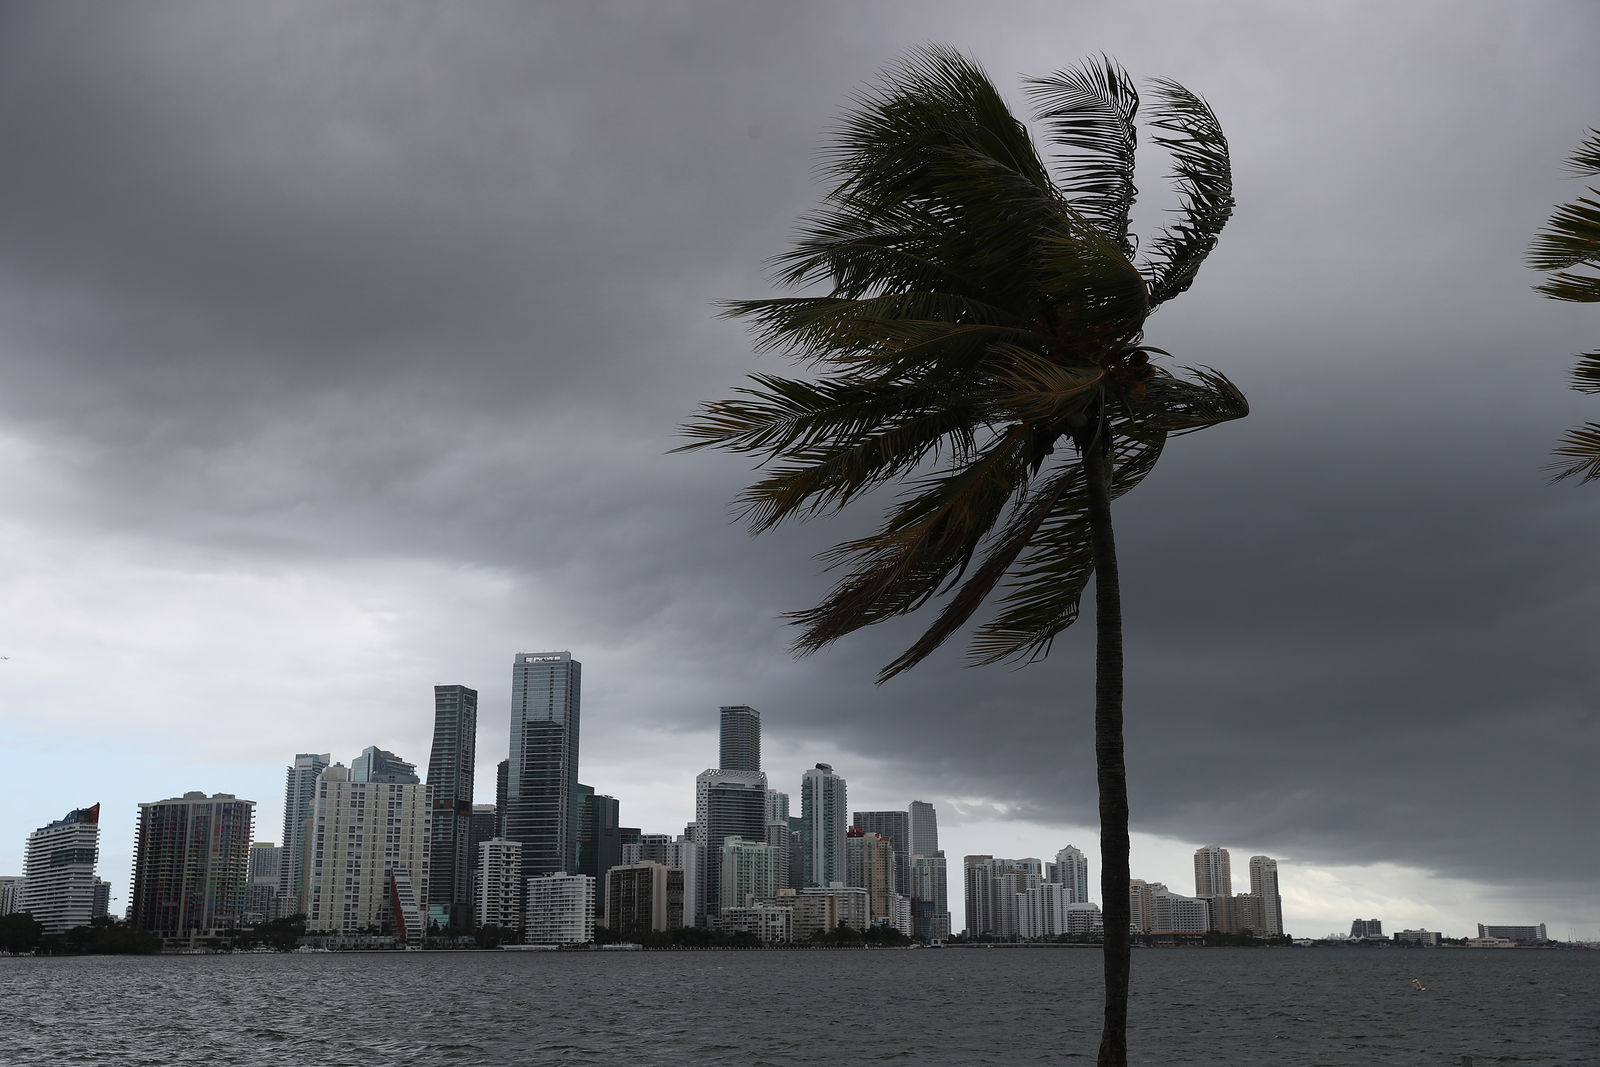 MIAMI, FLORIDA - AUGUST 01: Storm clouds are seen over the city as Hurricane Isaias approaches the east coast of Florida on August 01, 2020 in Miami, Florida. The hurricane is expected to brush past the east coast of Florida within the next 24 hours. (Photo by Joe Raedle/Getty Images)